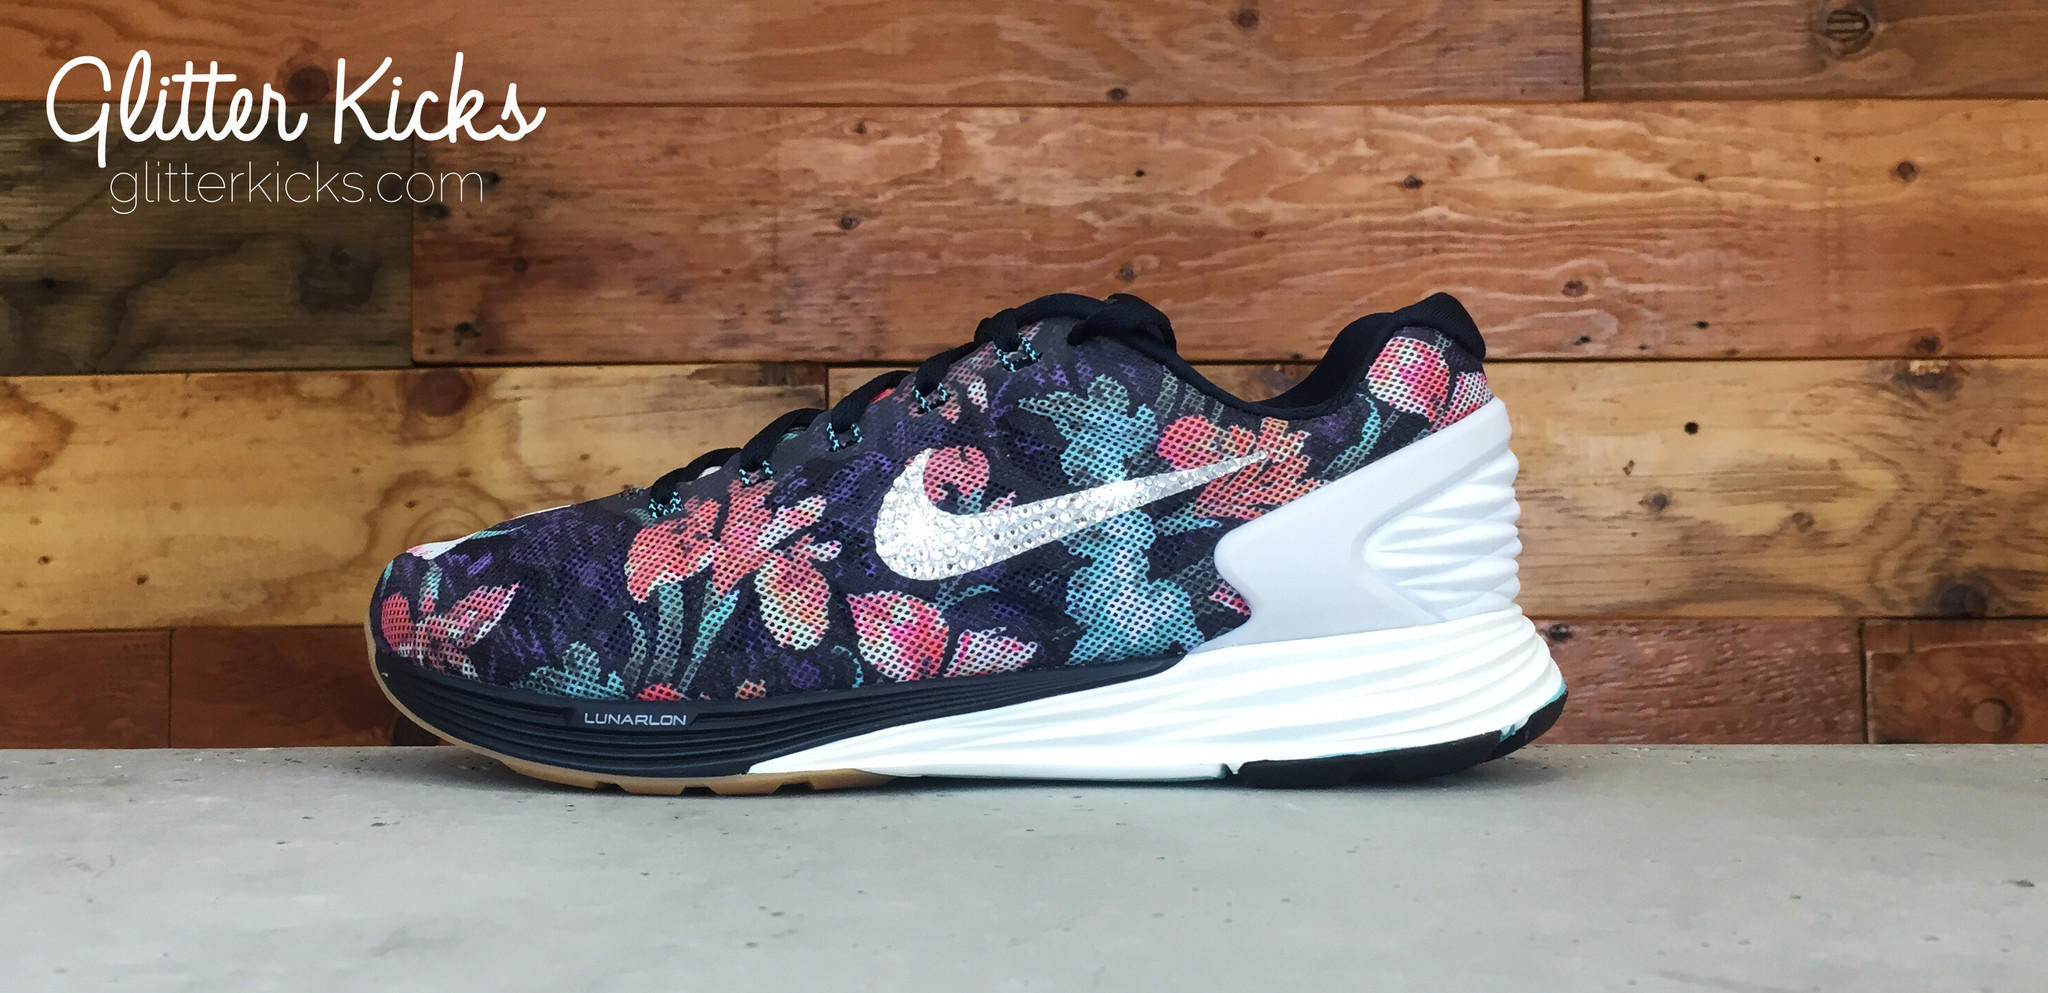 Nike Lunarglide 6 Photosynthesis from Glitter Kicks  36a3743e4d